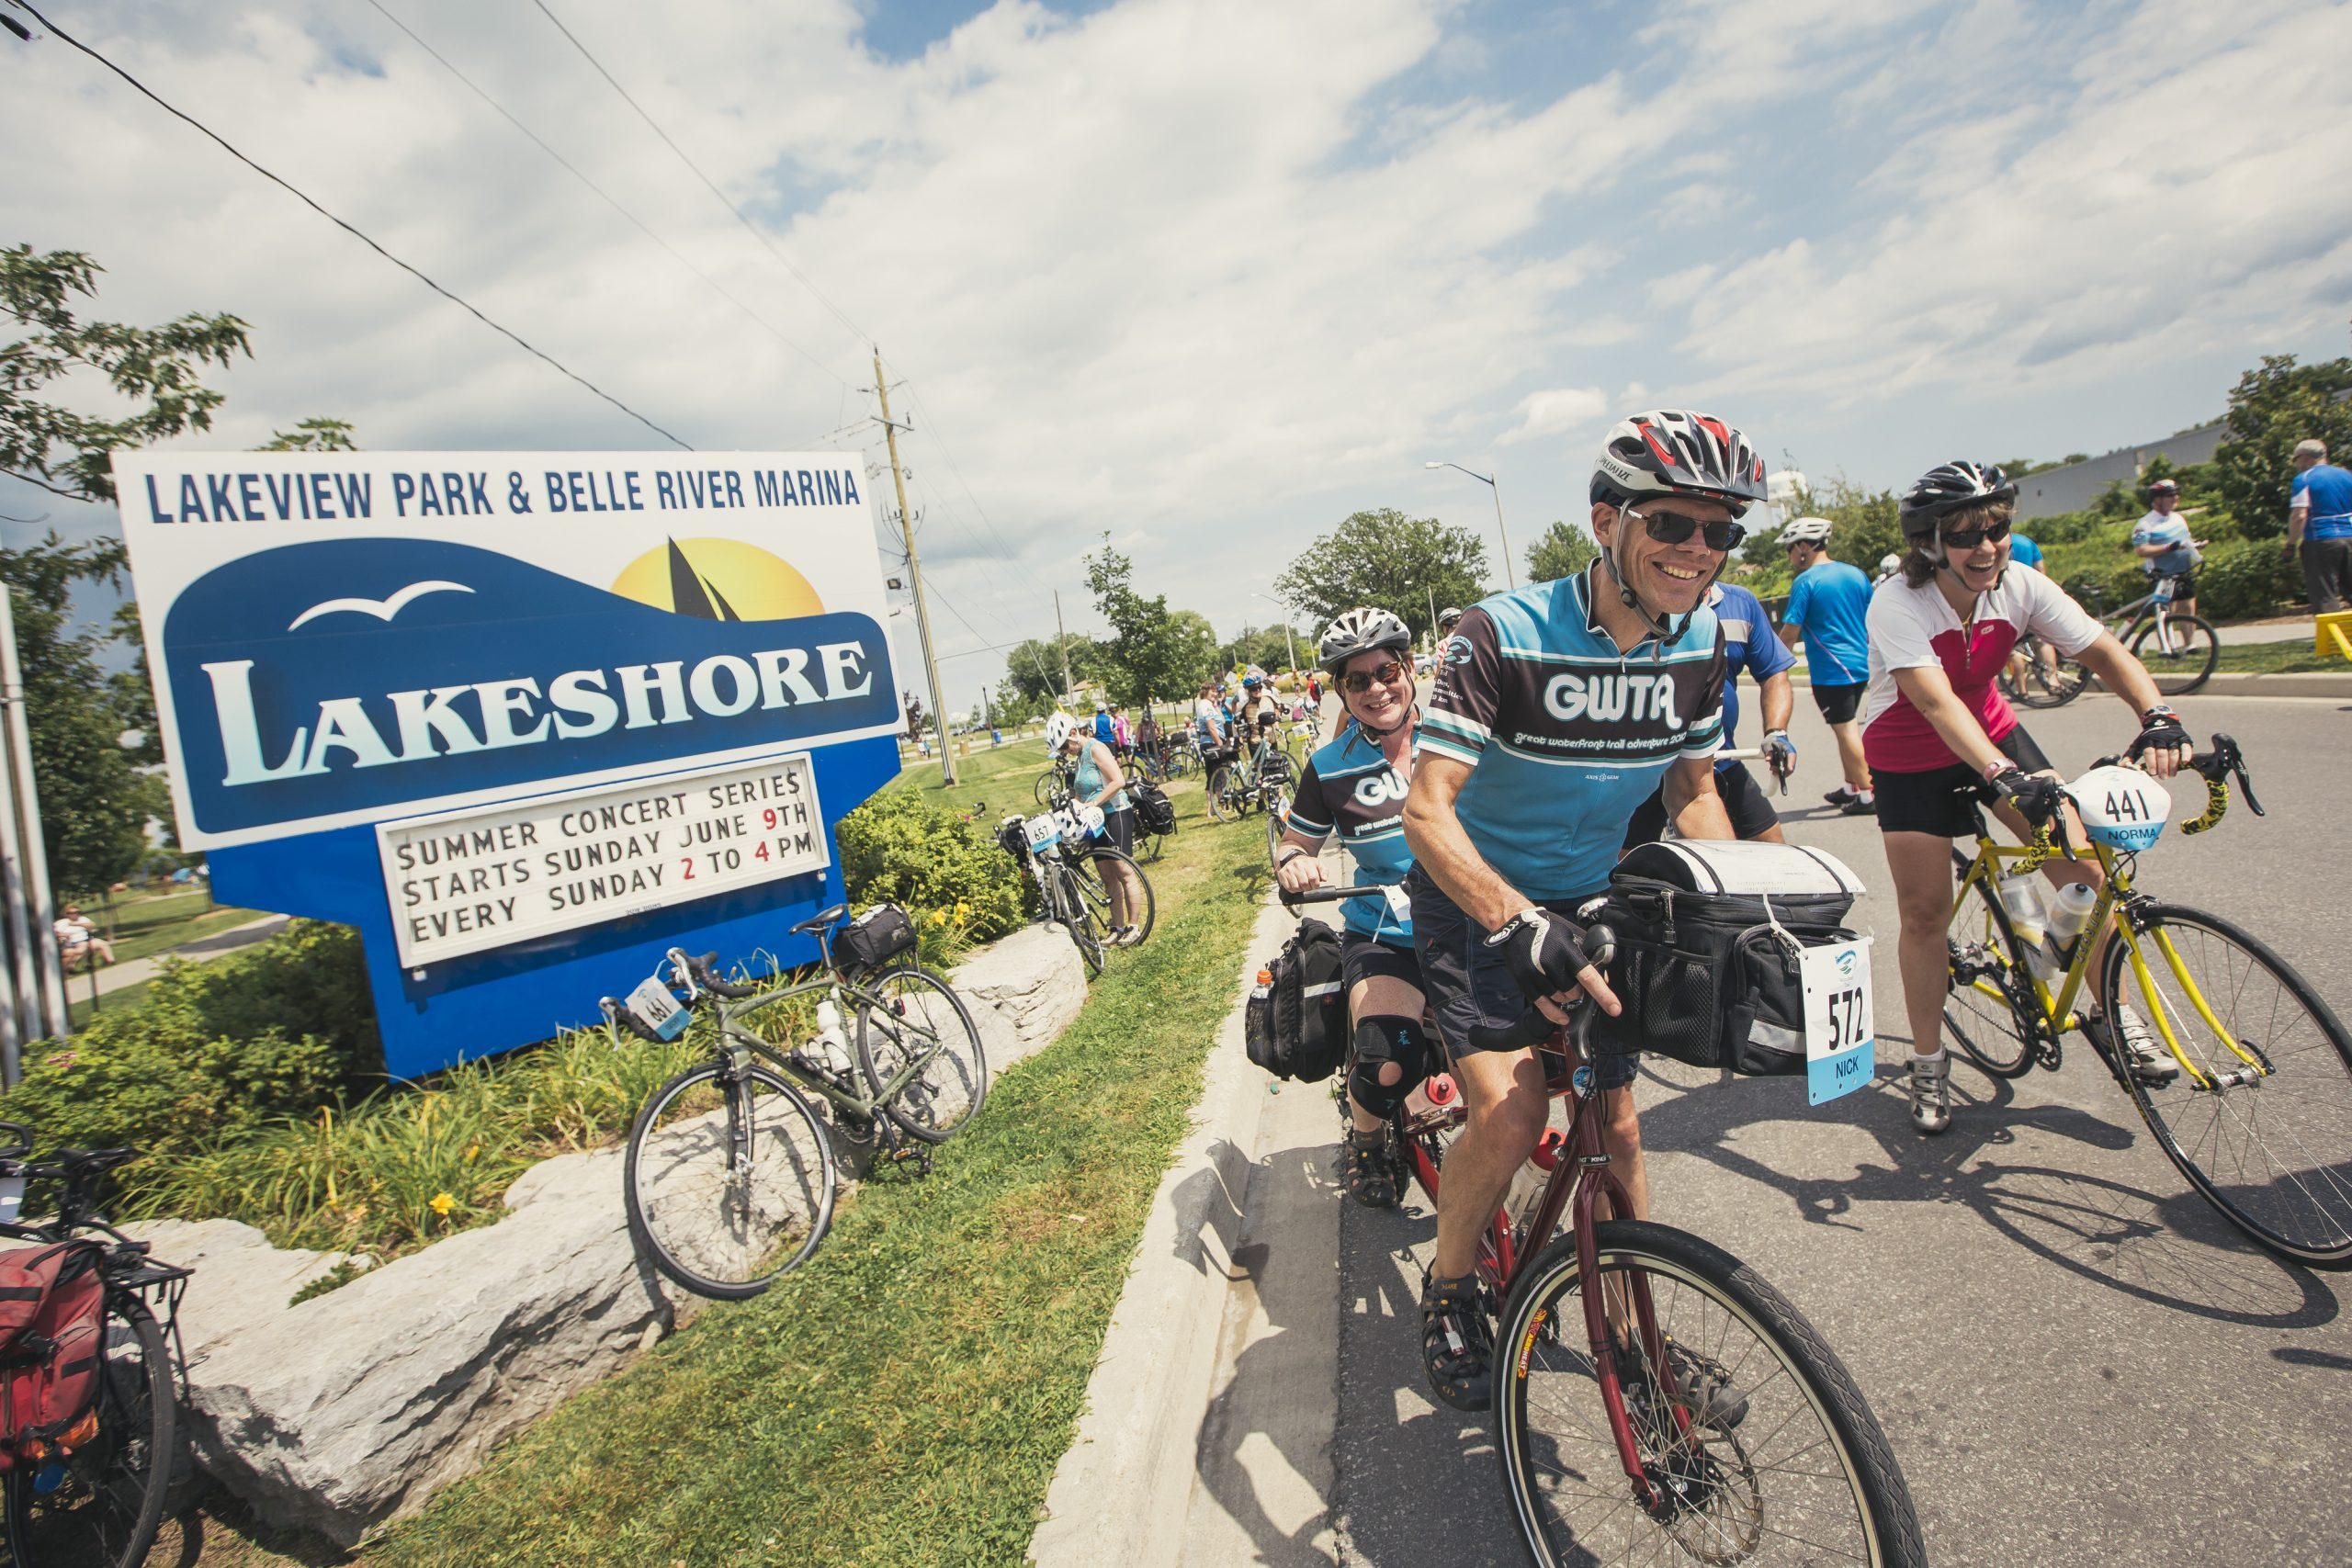 The Great Waterfront Trail brings you across Ontario by bike.